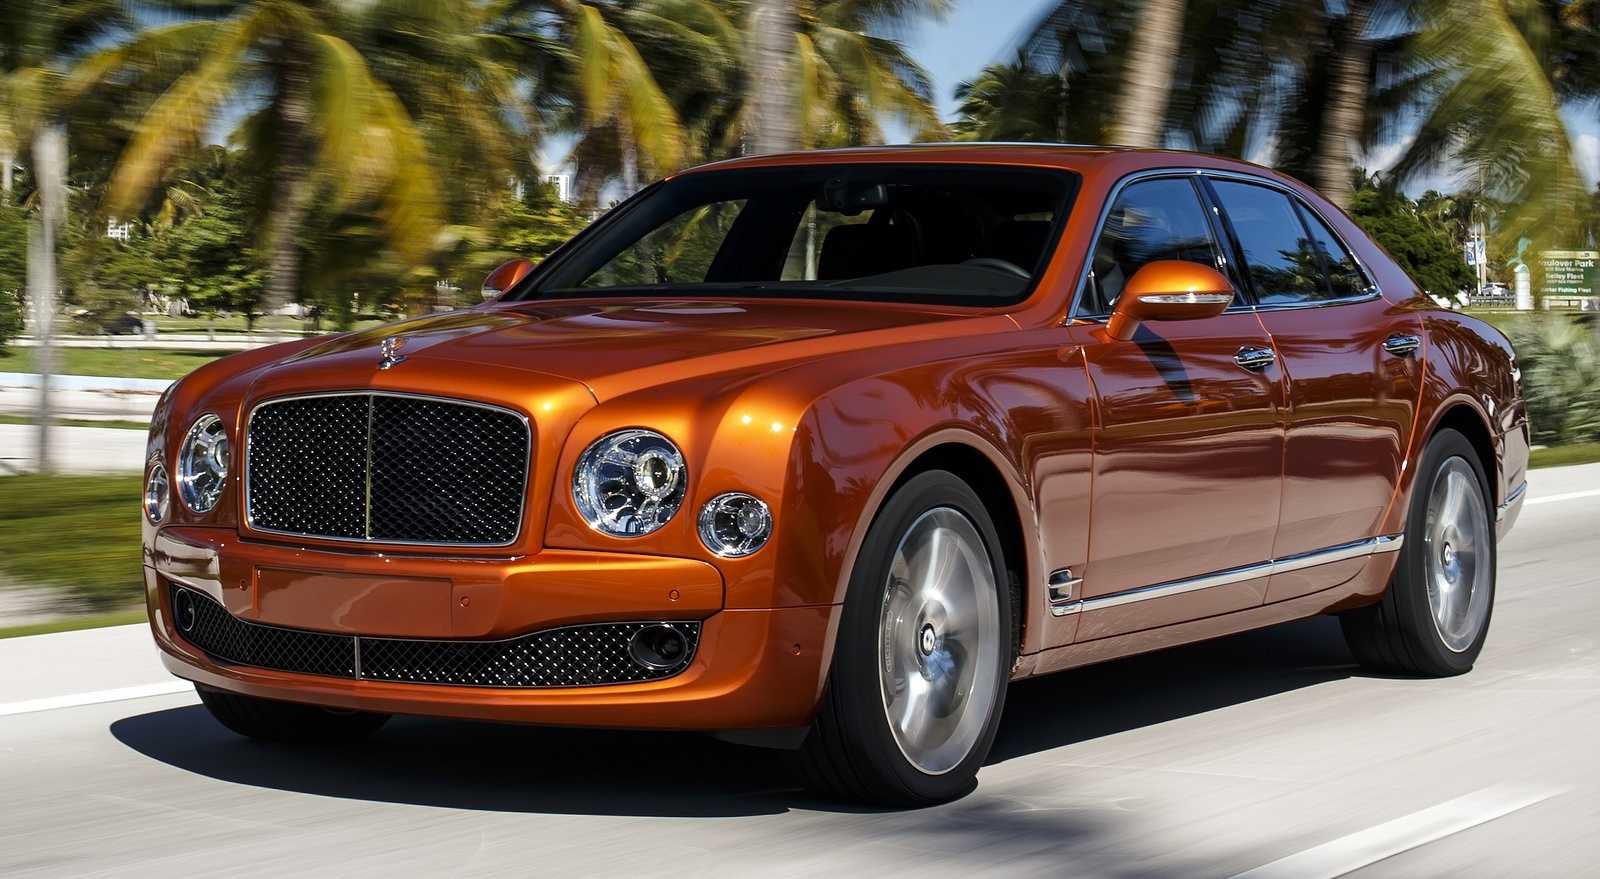 2015 Bentley Mulsanne Overview CarGurus